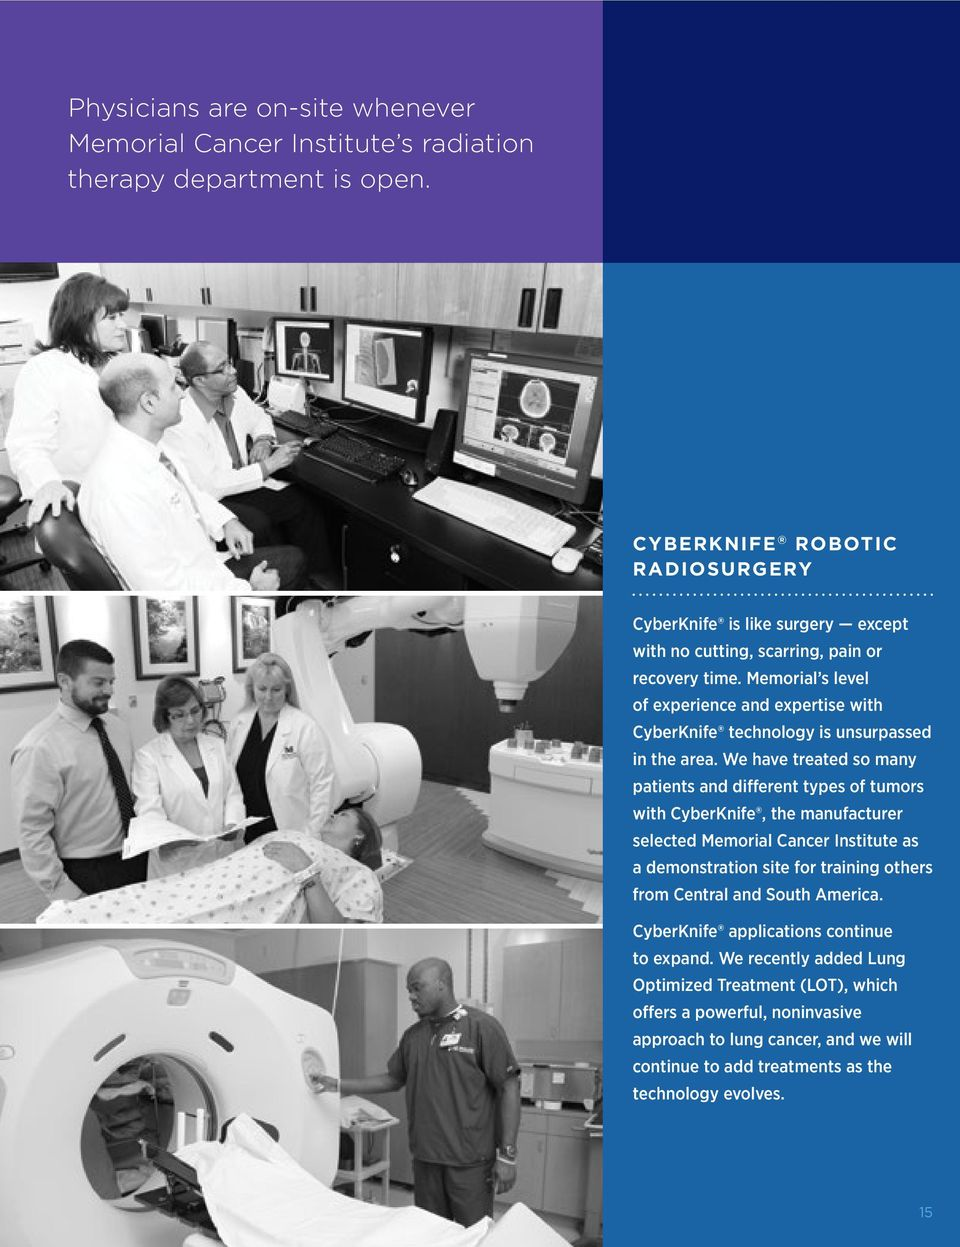 Memorial s level of experience and expertise with CyberKnife technology is unsurpassed in the area.